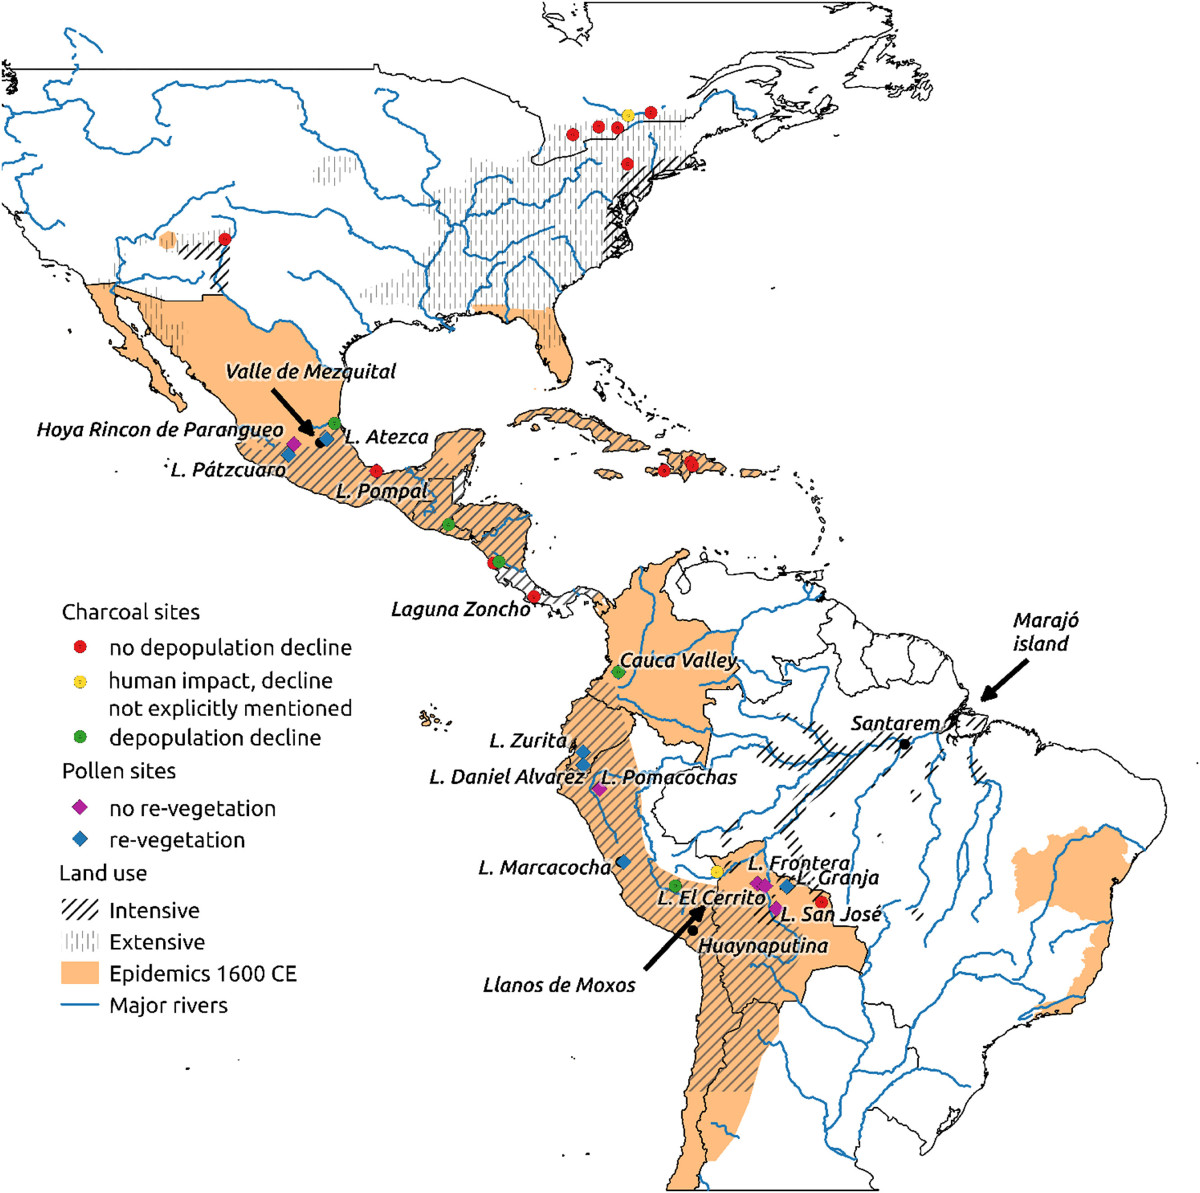 A map highlighting regions known to have been affected by disease outbreaks by 1600 CE and pre-Columbian land use.